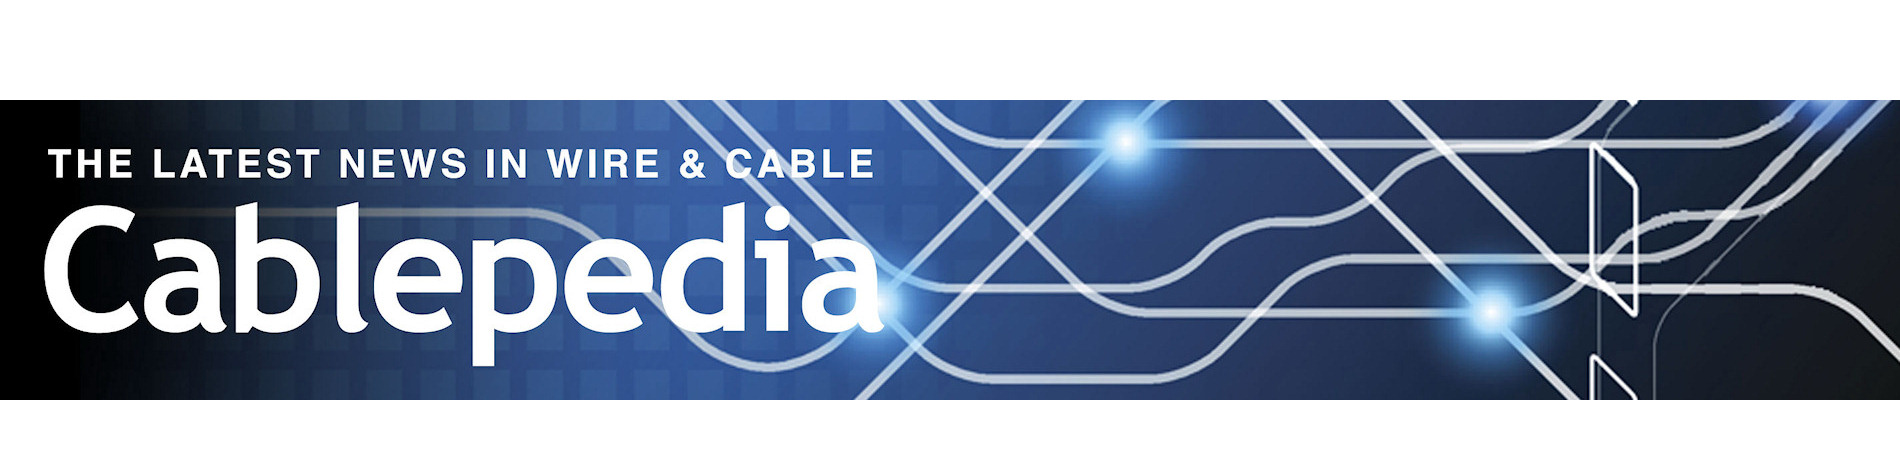 Cablepedia - The Latest News in Wire & Cable